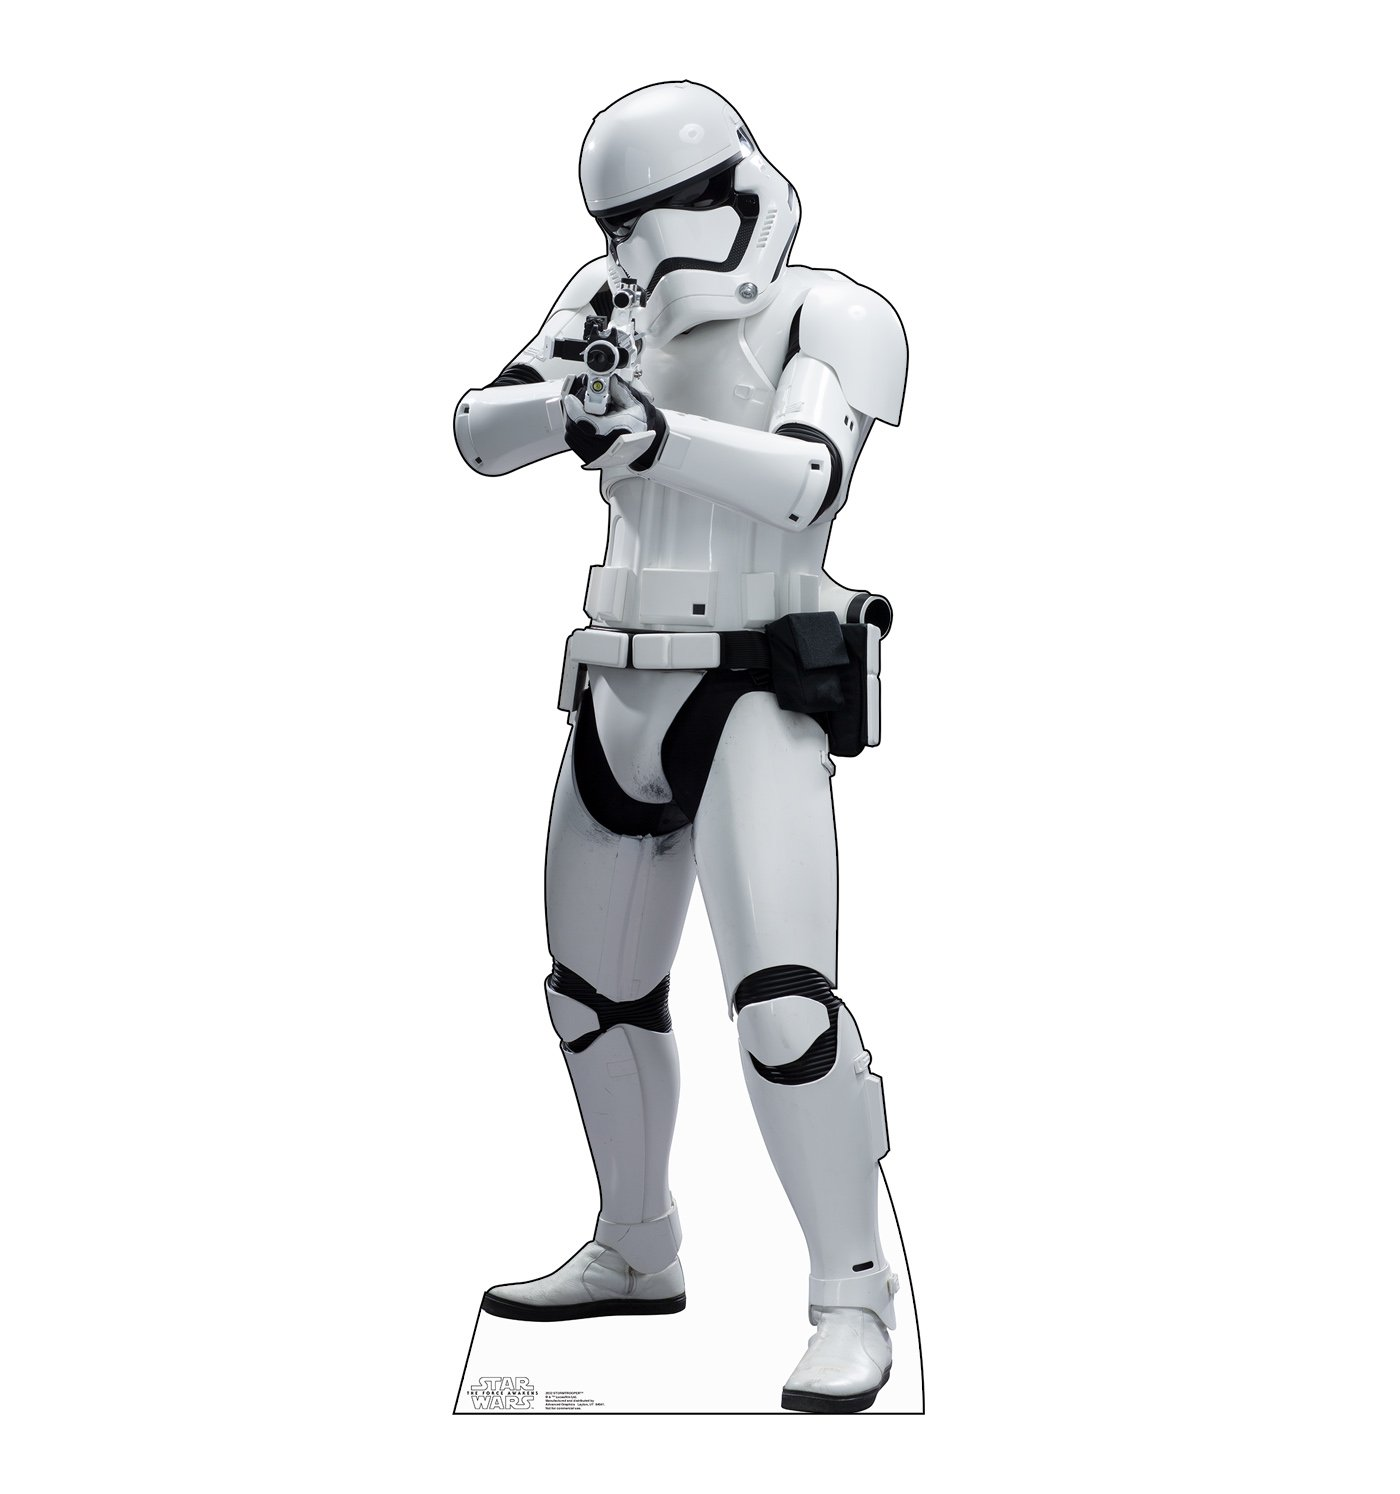 Advanced Graphics Stormtrooper Life Size Cardboard Cutout Standup - Star Wars VII: The Force Awakens